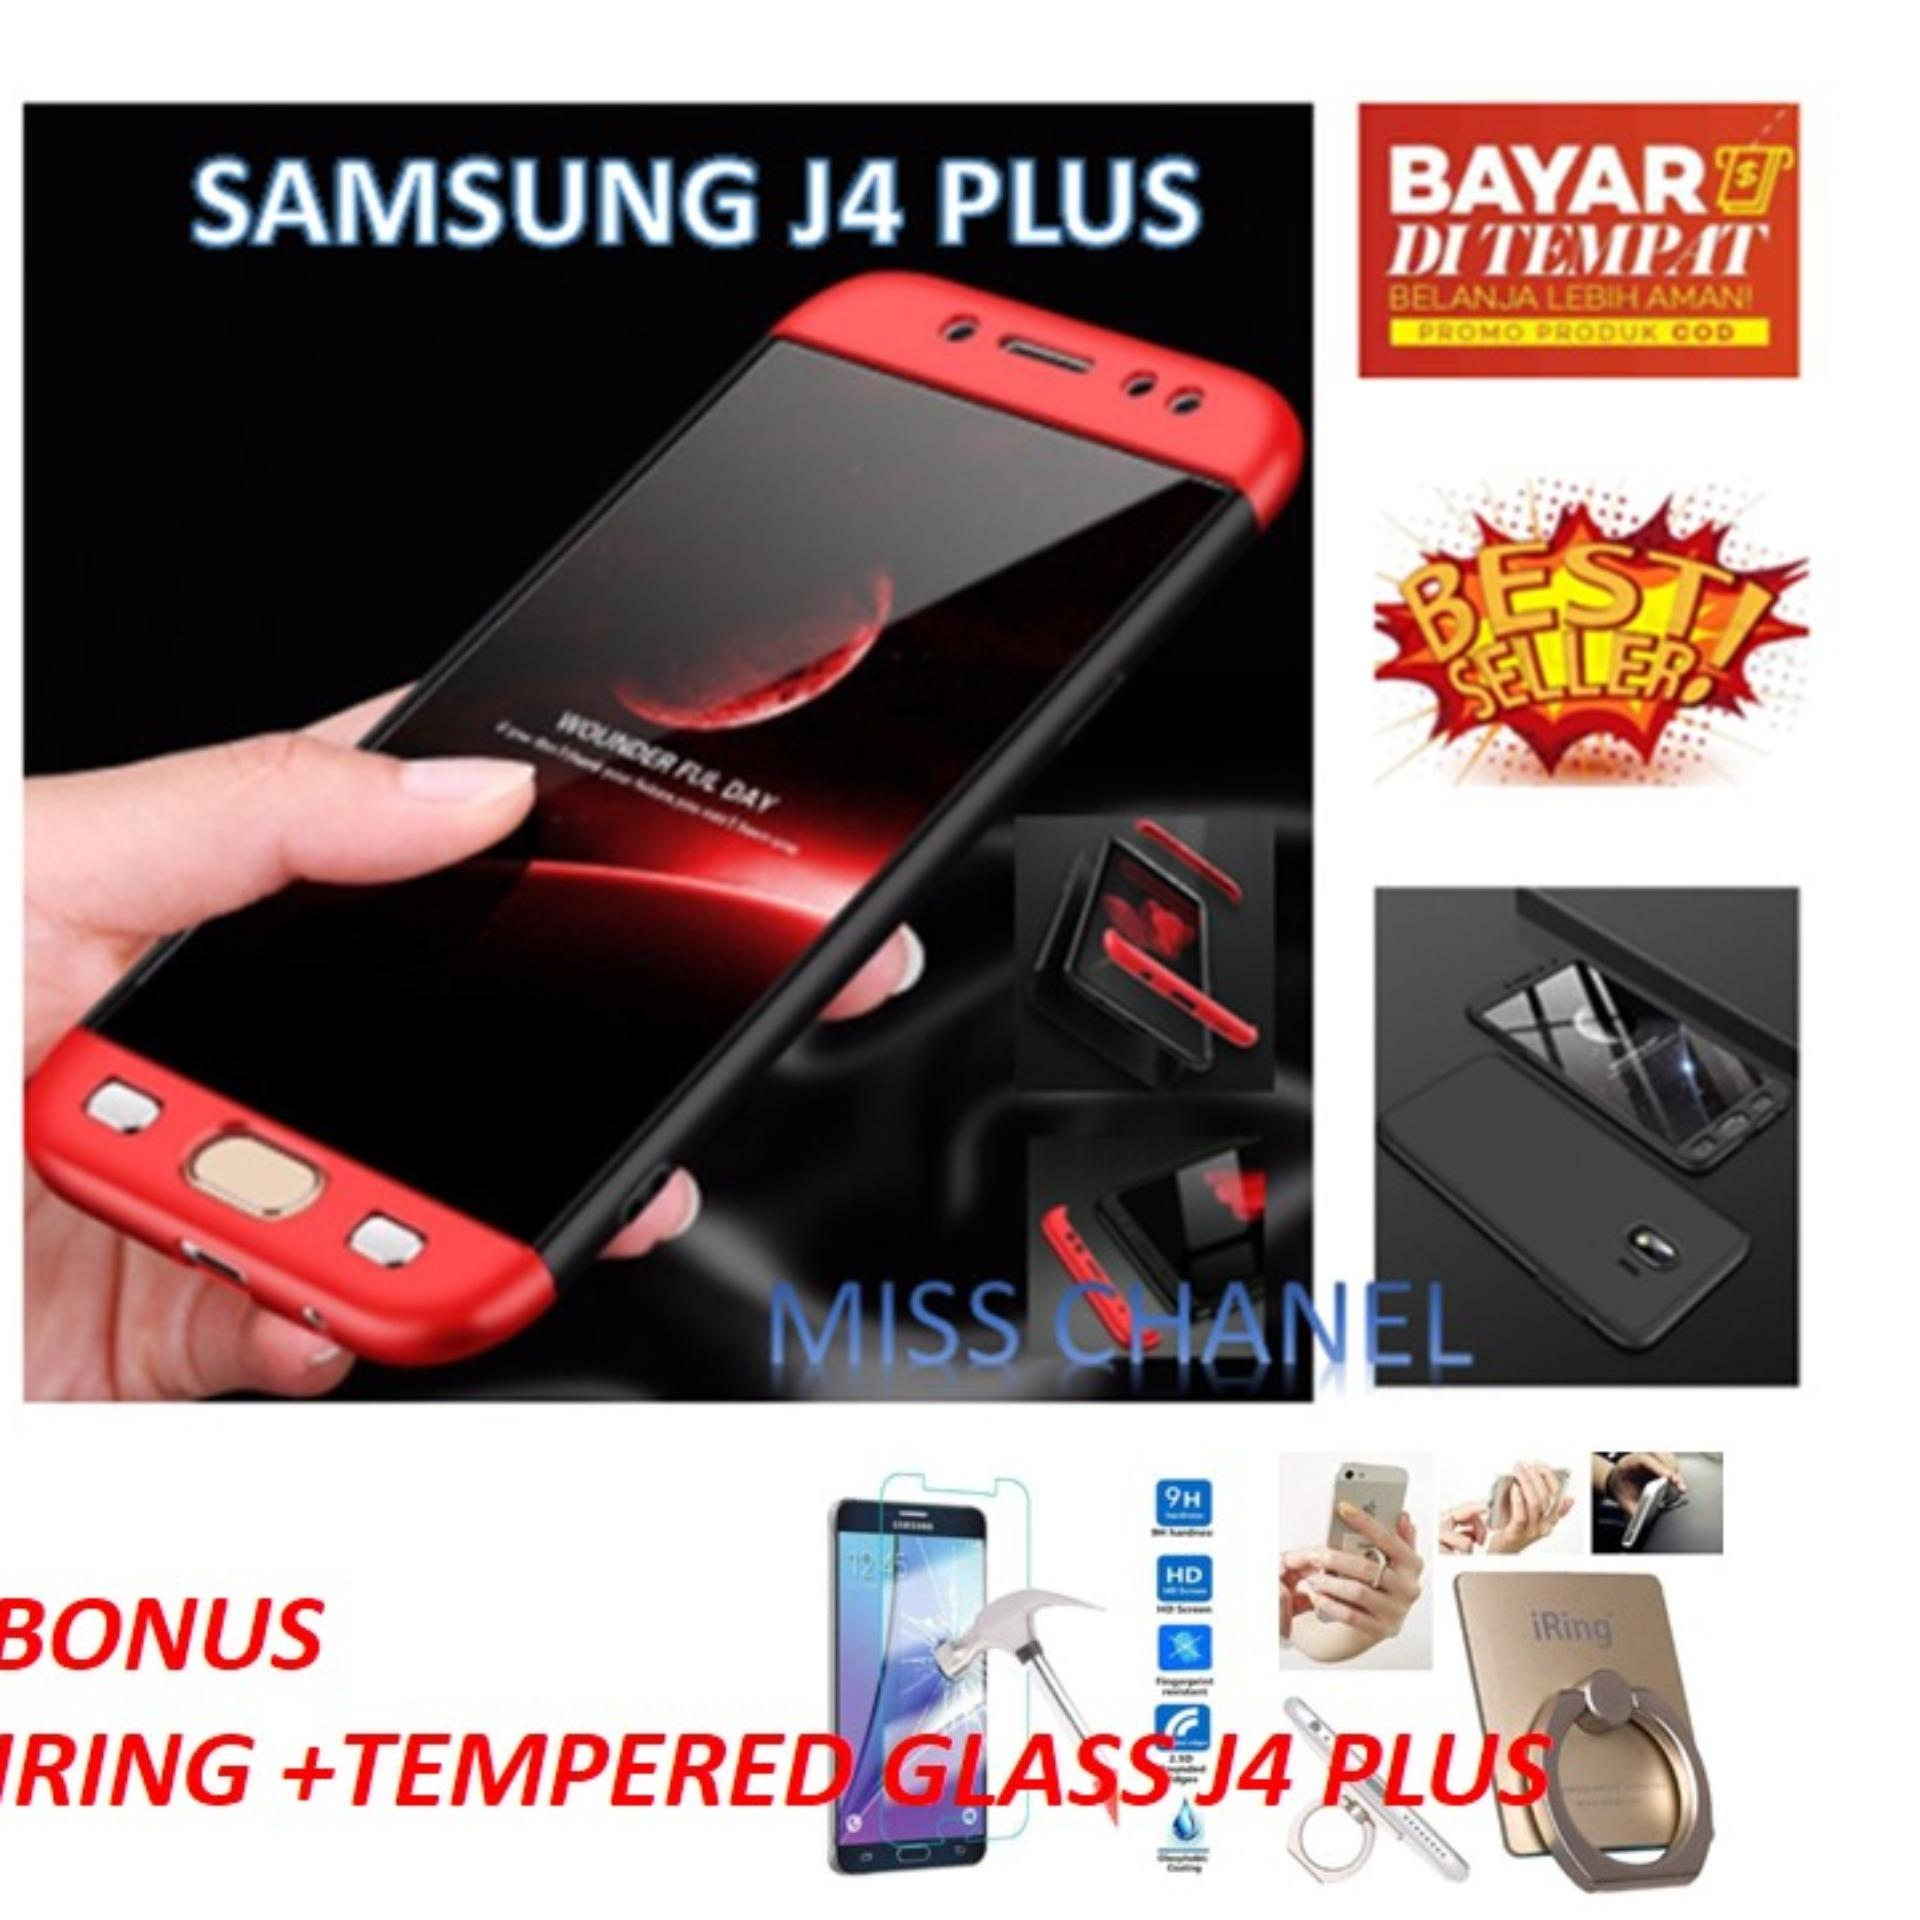 Case GKK 360 Full Body Protection for  Samsung  Galaxy J4 PLUS 2018 /Casing Cover  Degree Full Protection Hard PC Cover / CASE 360 PREMIUM FULL PERLINDUNGAN DEPAN BELAKANG BONUS ANTI GORES KACA + IRING